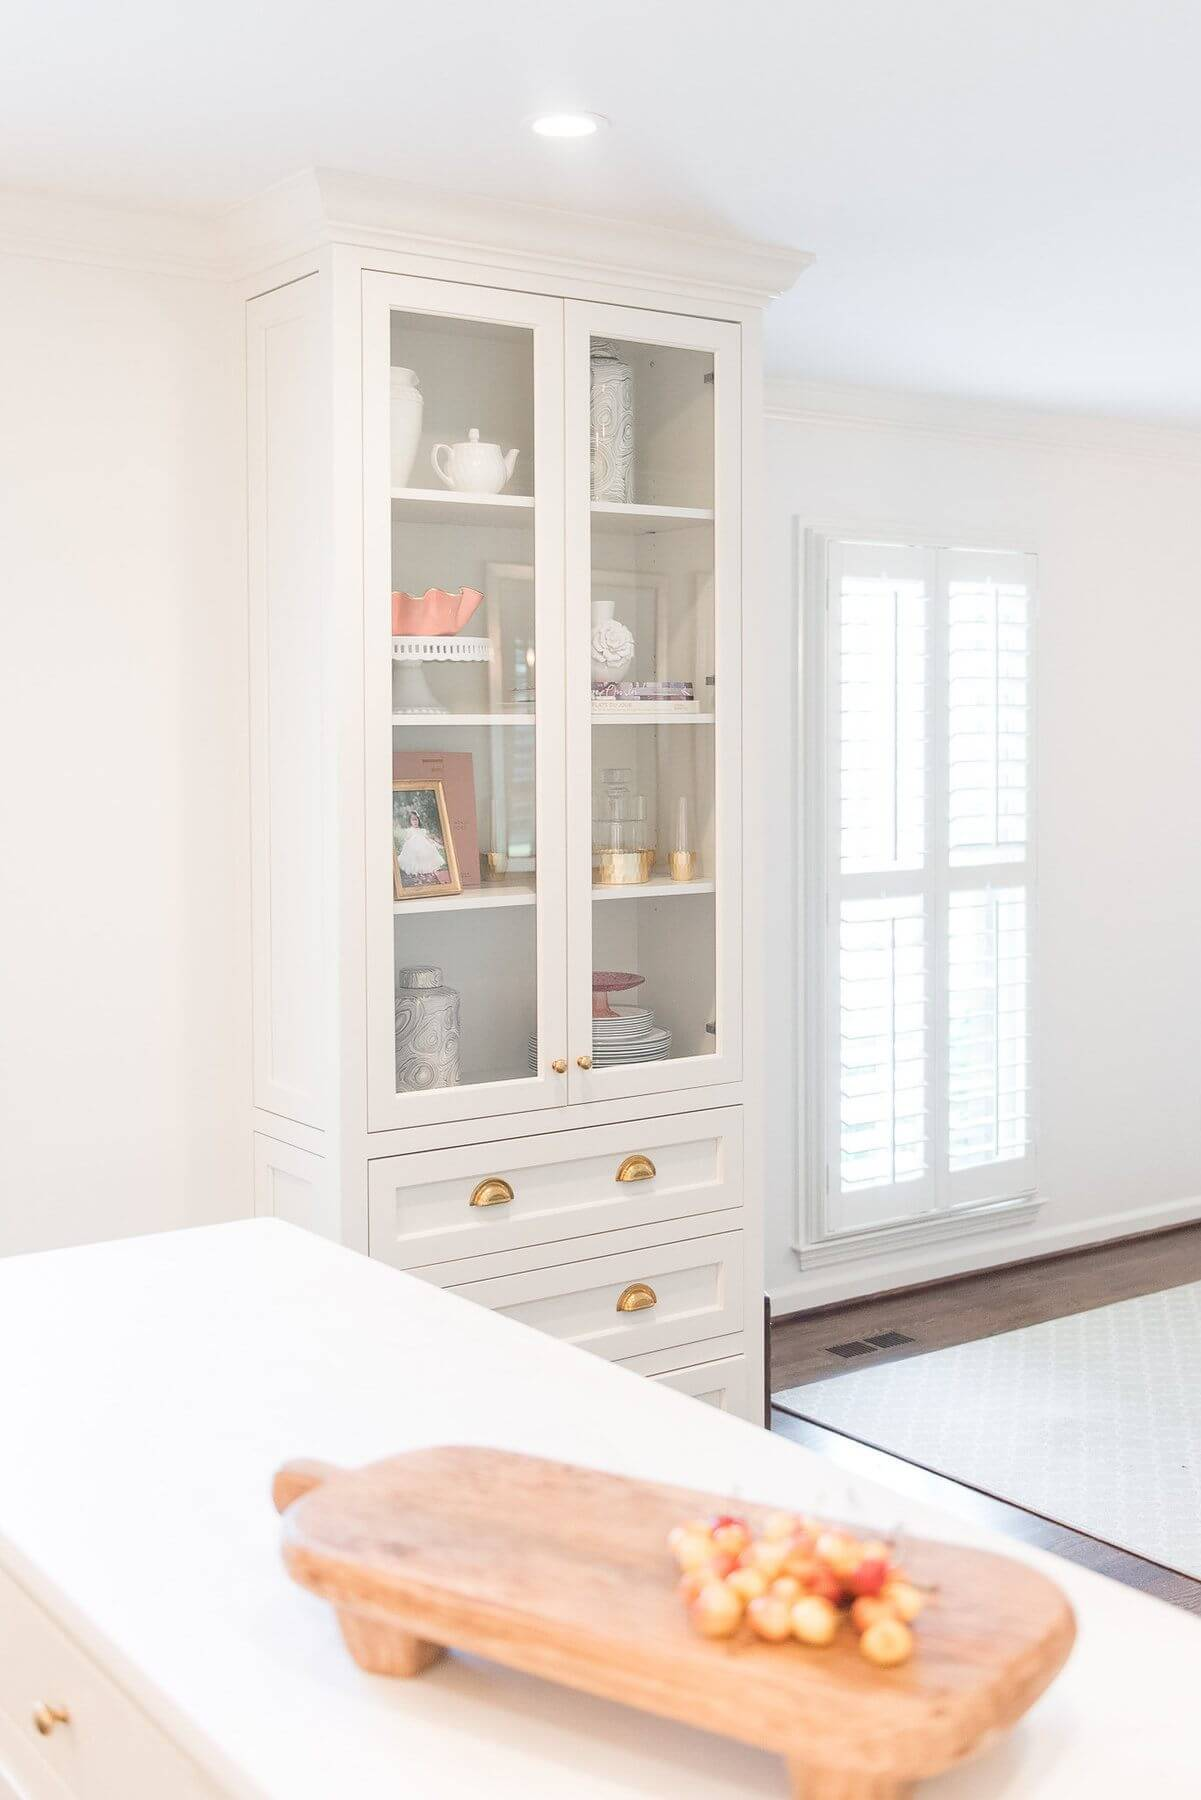 Cyndy Cantley drew the China cabinet into the floor plan, and it was an unexpected yet welcome surprise.